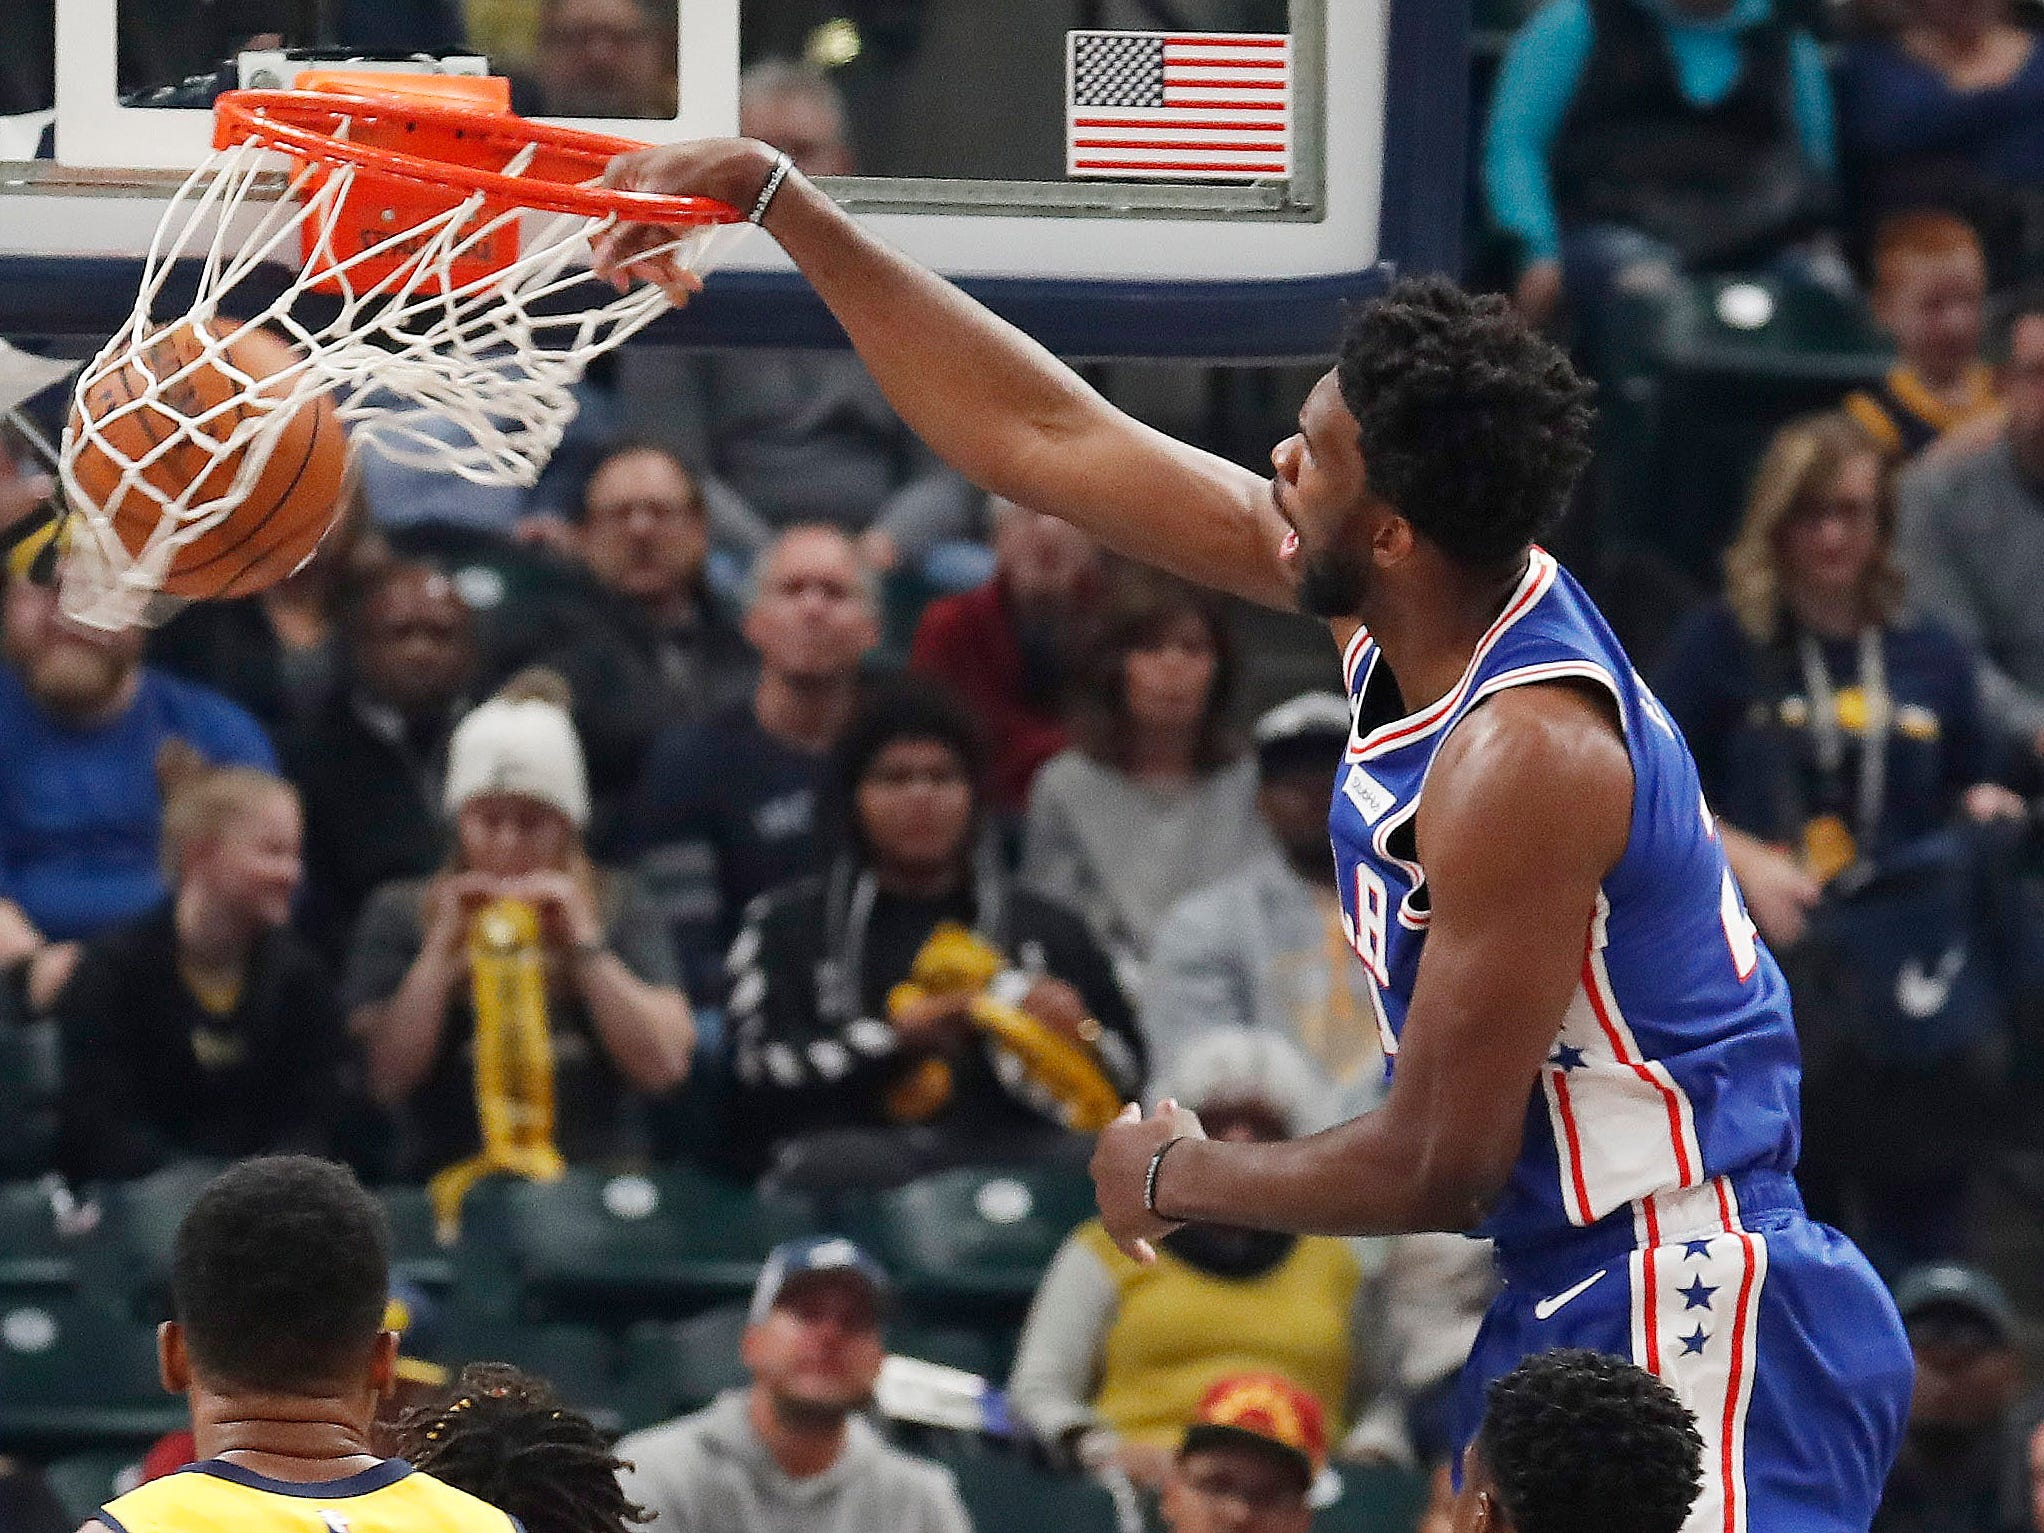 Nov. 7: 76ers center Joel Embiid thros down a one-handed slam during the first half against the Pacers in Indianapolis.